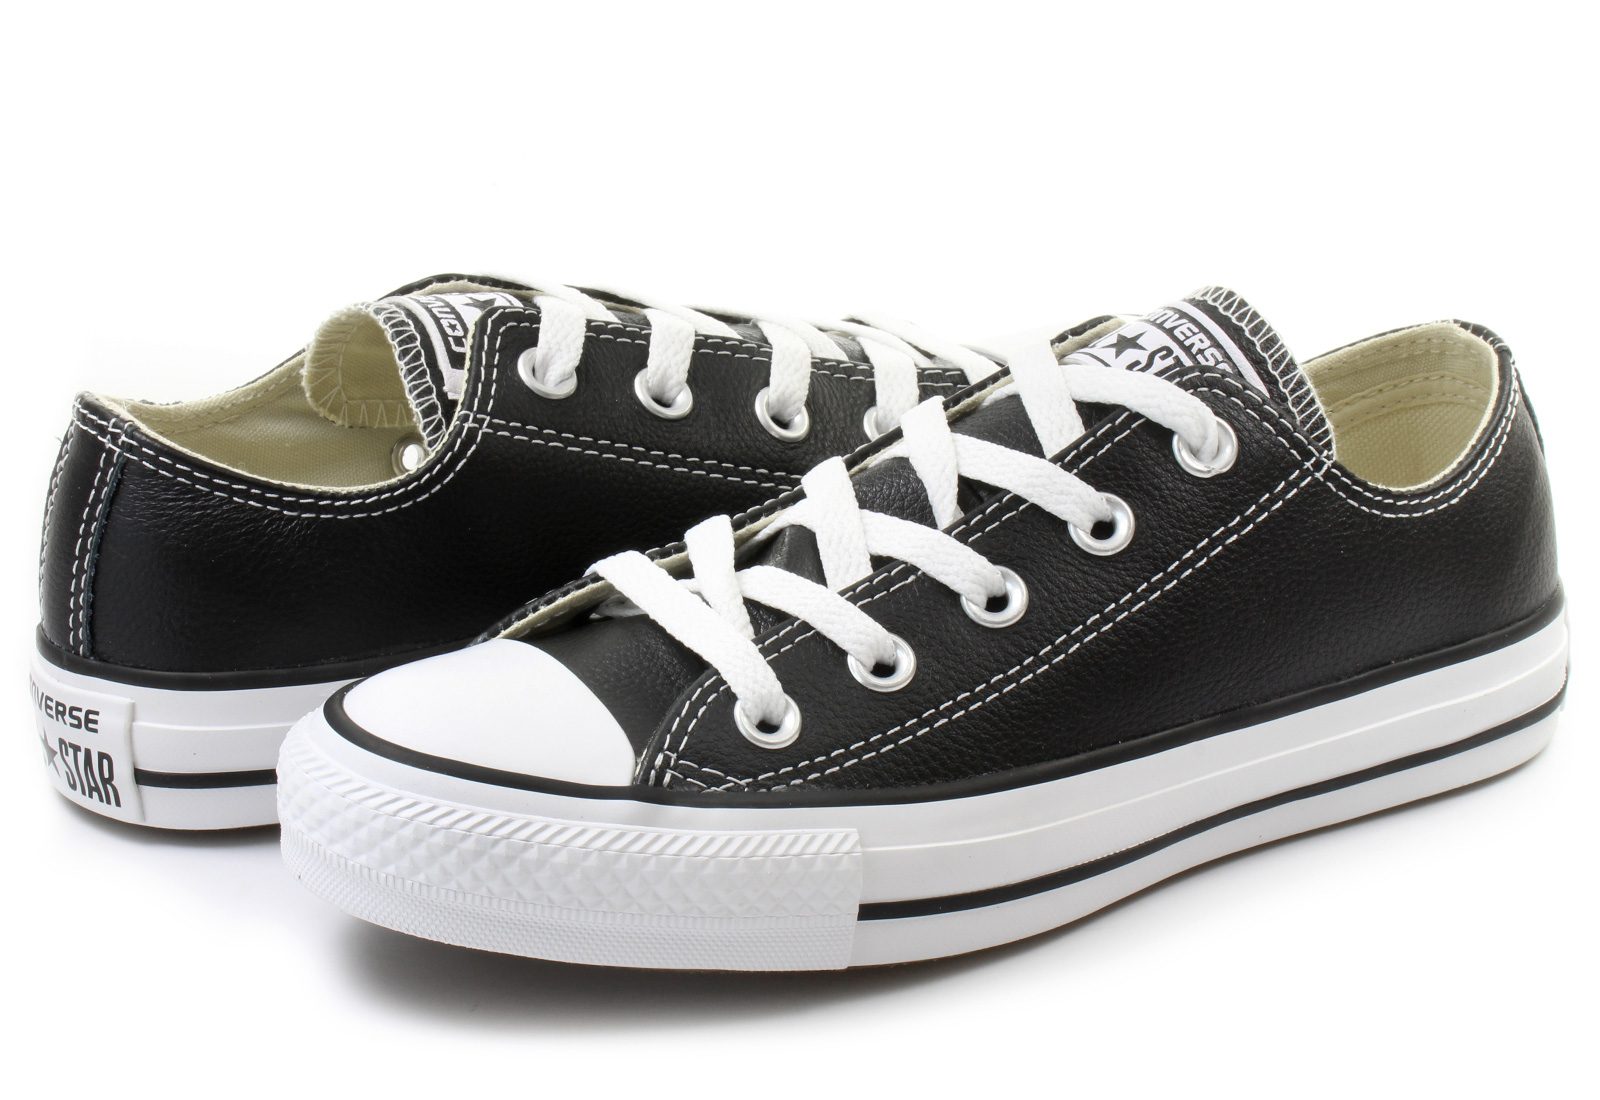 9b8bdff3f9 Converse Tornacipő - Ct As Core Leather Ox - 132174C - Office Shoes ...